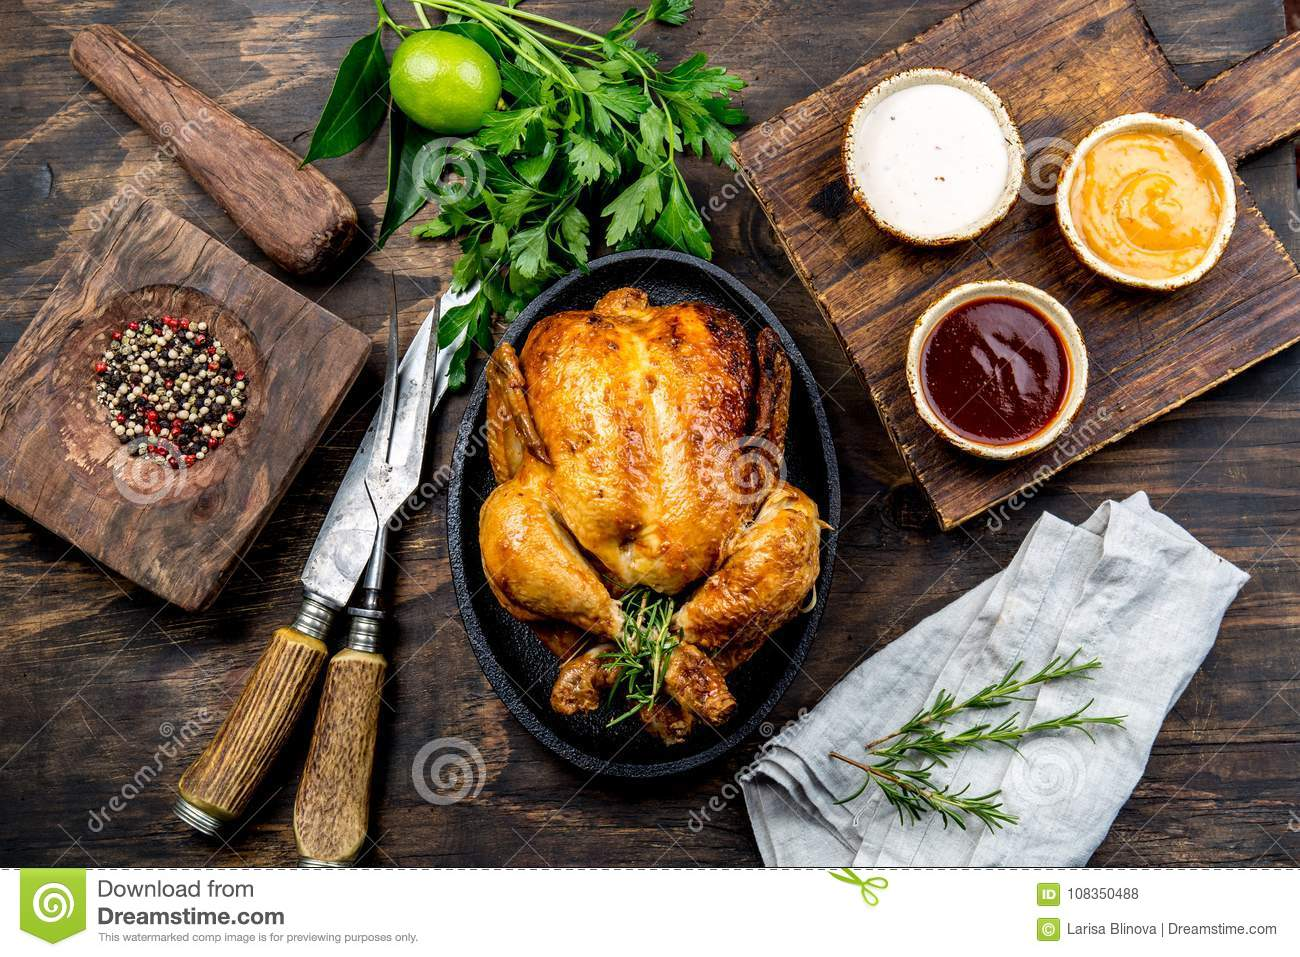 Roasted chicken with rosemary served on black plate with sauces on wooden table, top view.